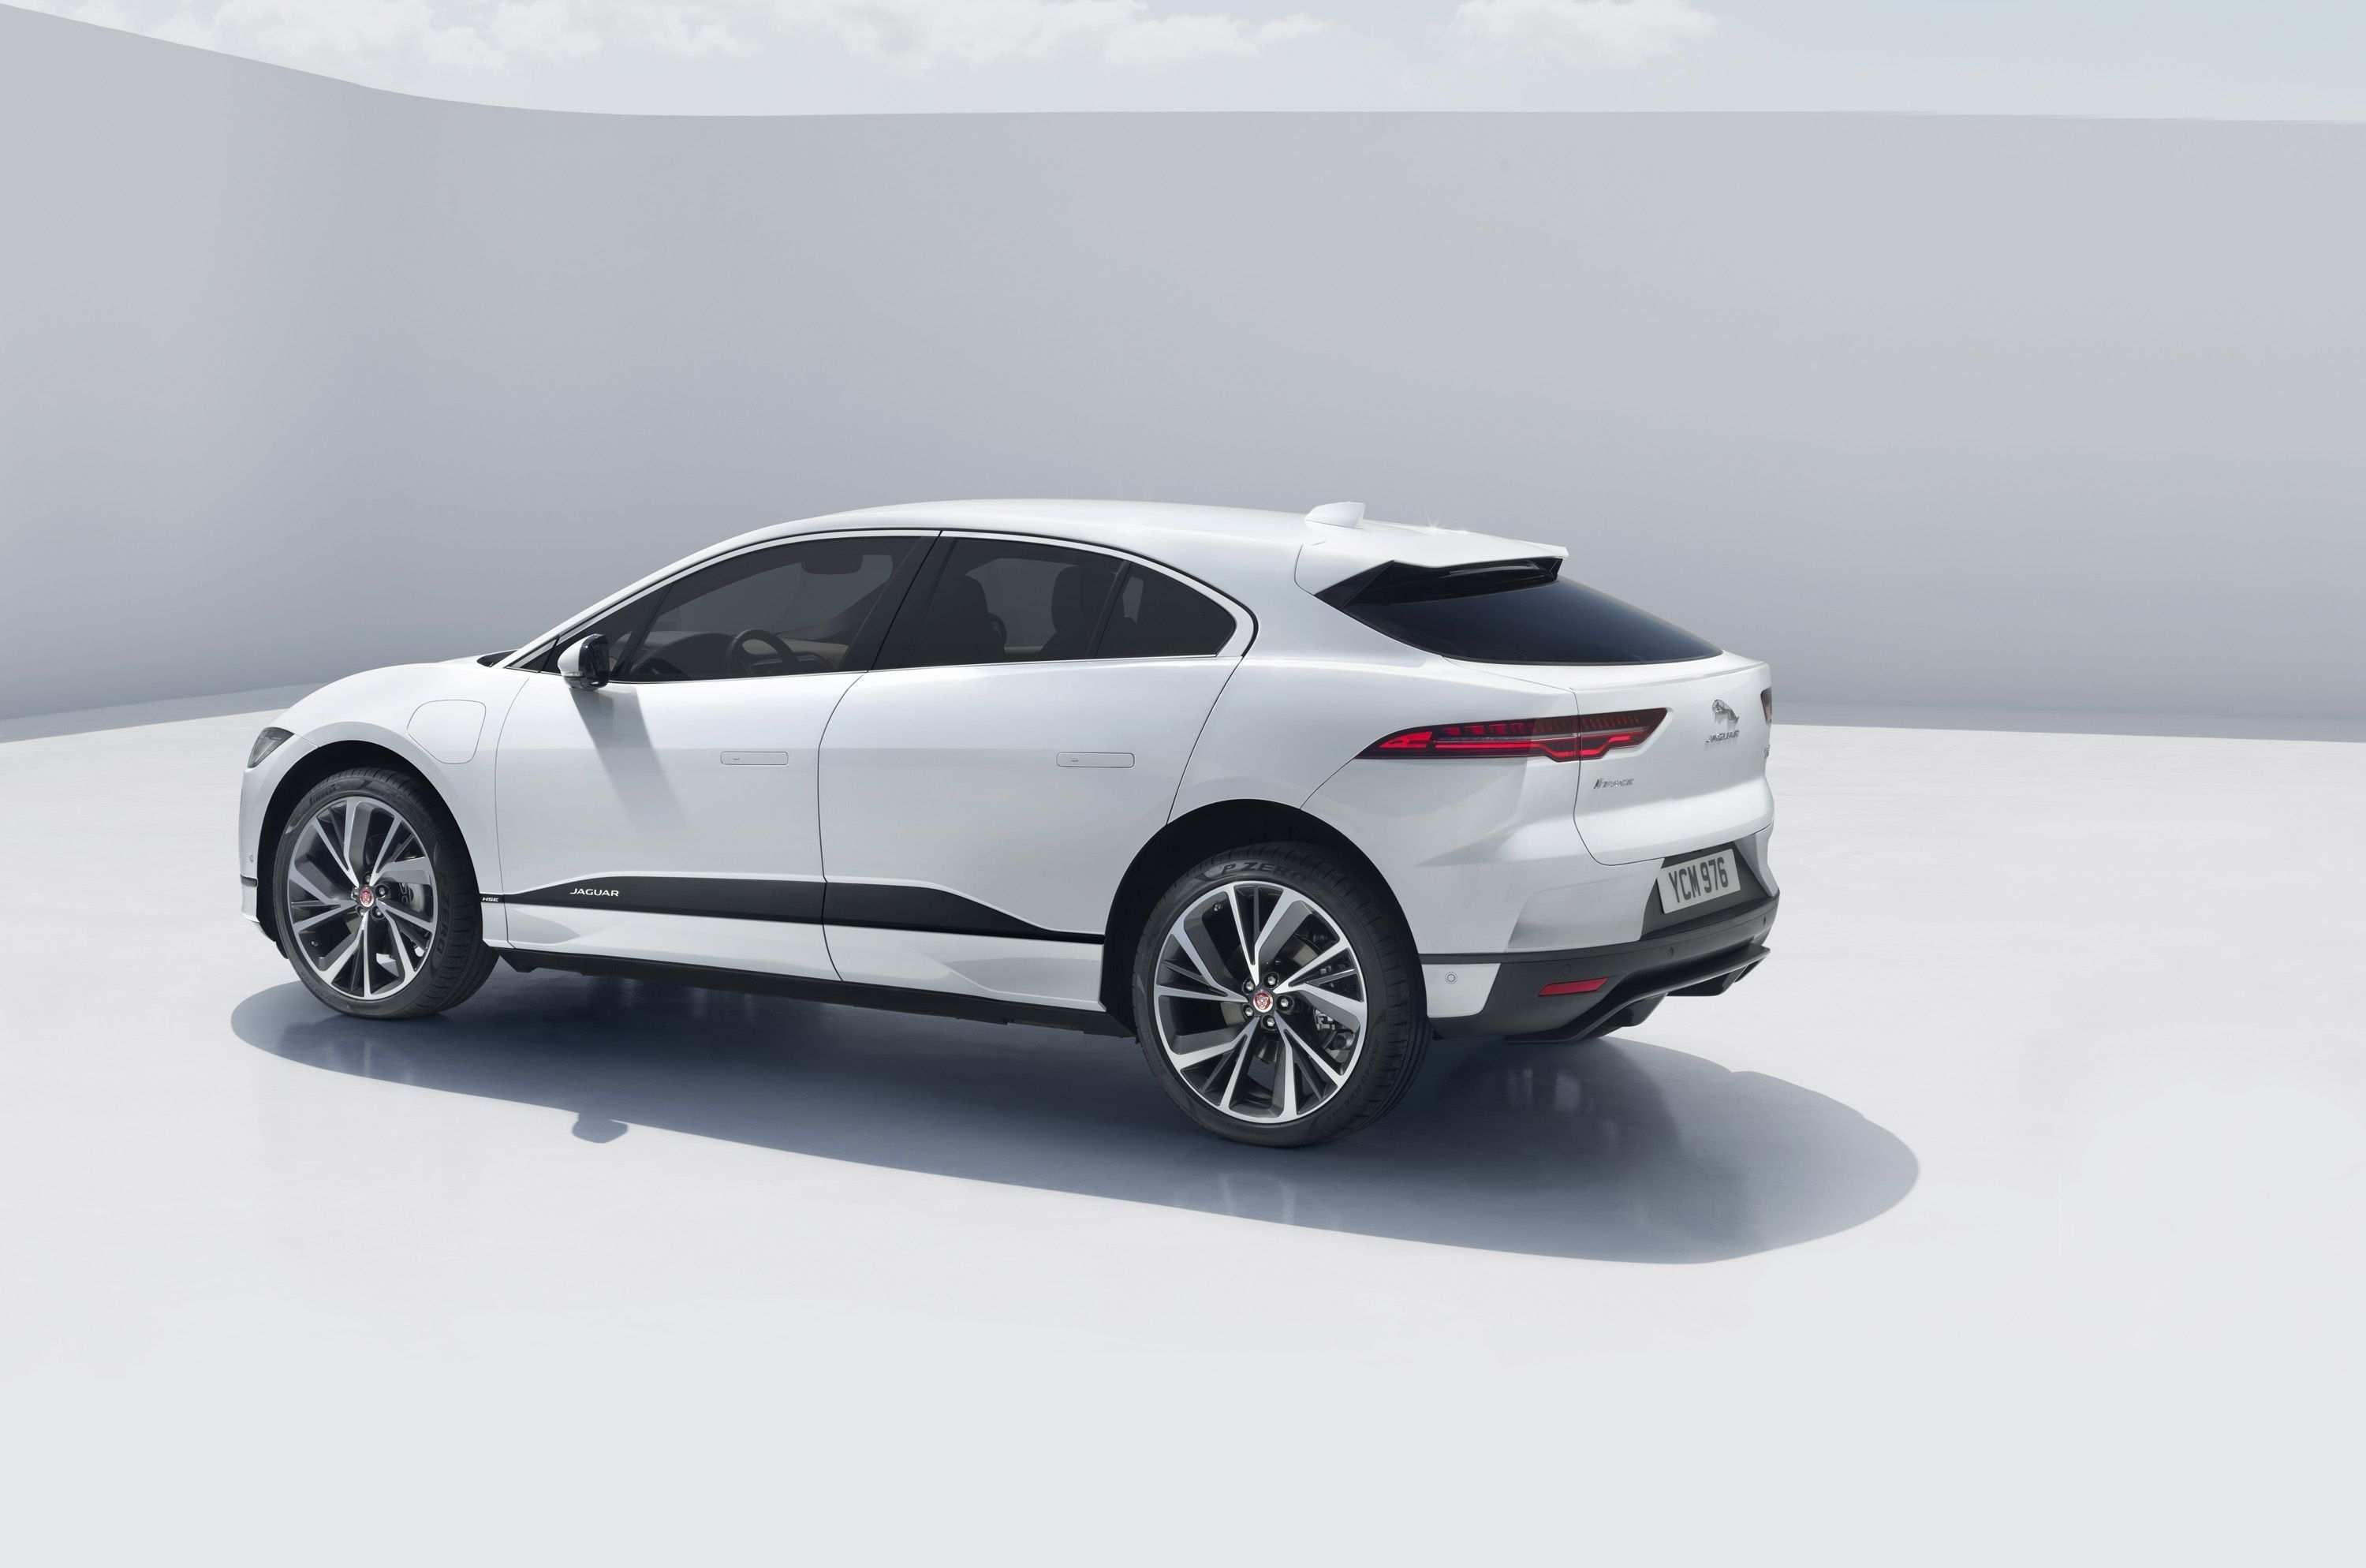 24 Gallery of Jaguar I Pace 2020 Exterior New Concept for Jaguar I Pace 2020 Exterior